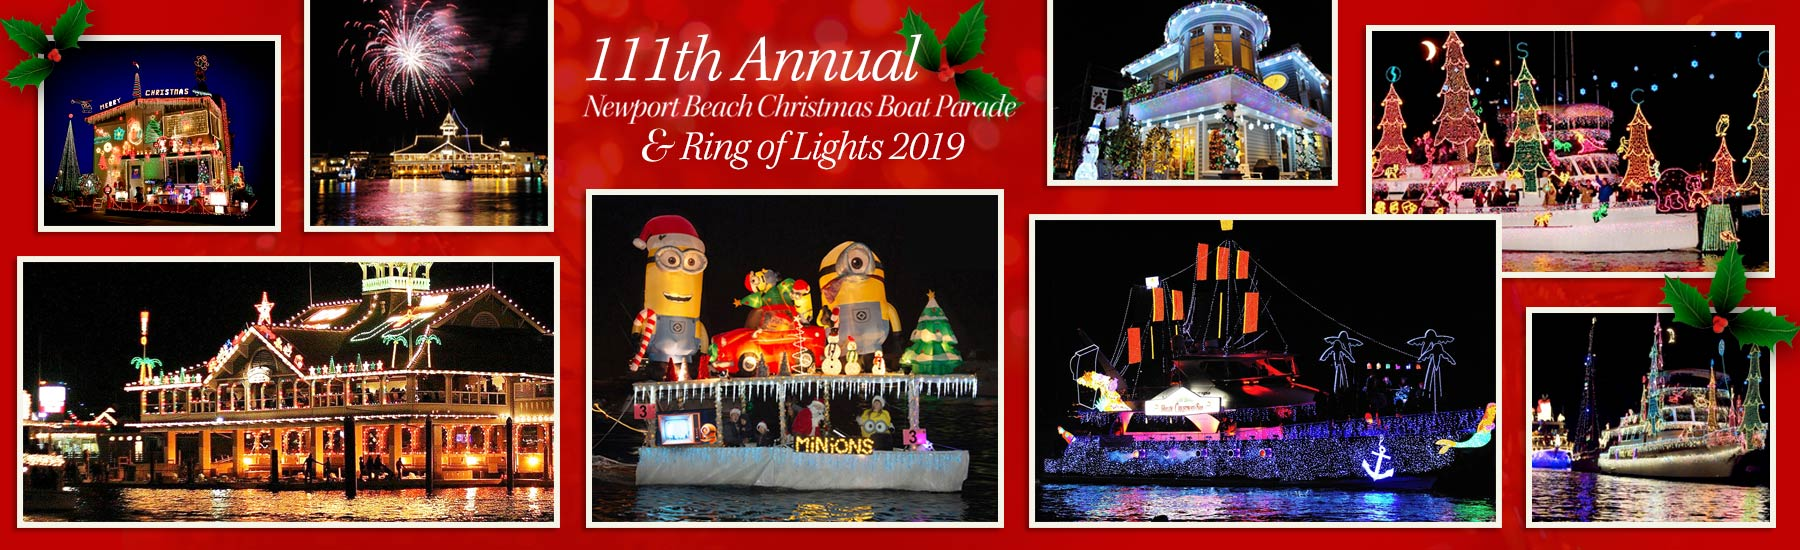 Newport Christmas Parade 2019 2019 Newport Beach Boat Parade Website   Company Christmas Event